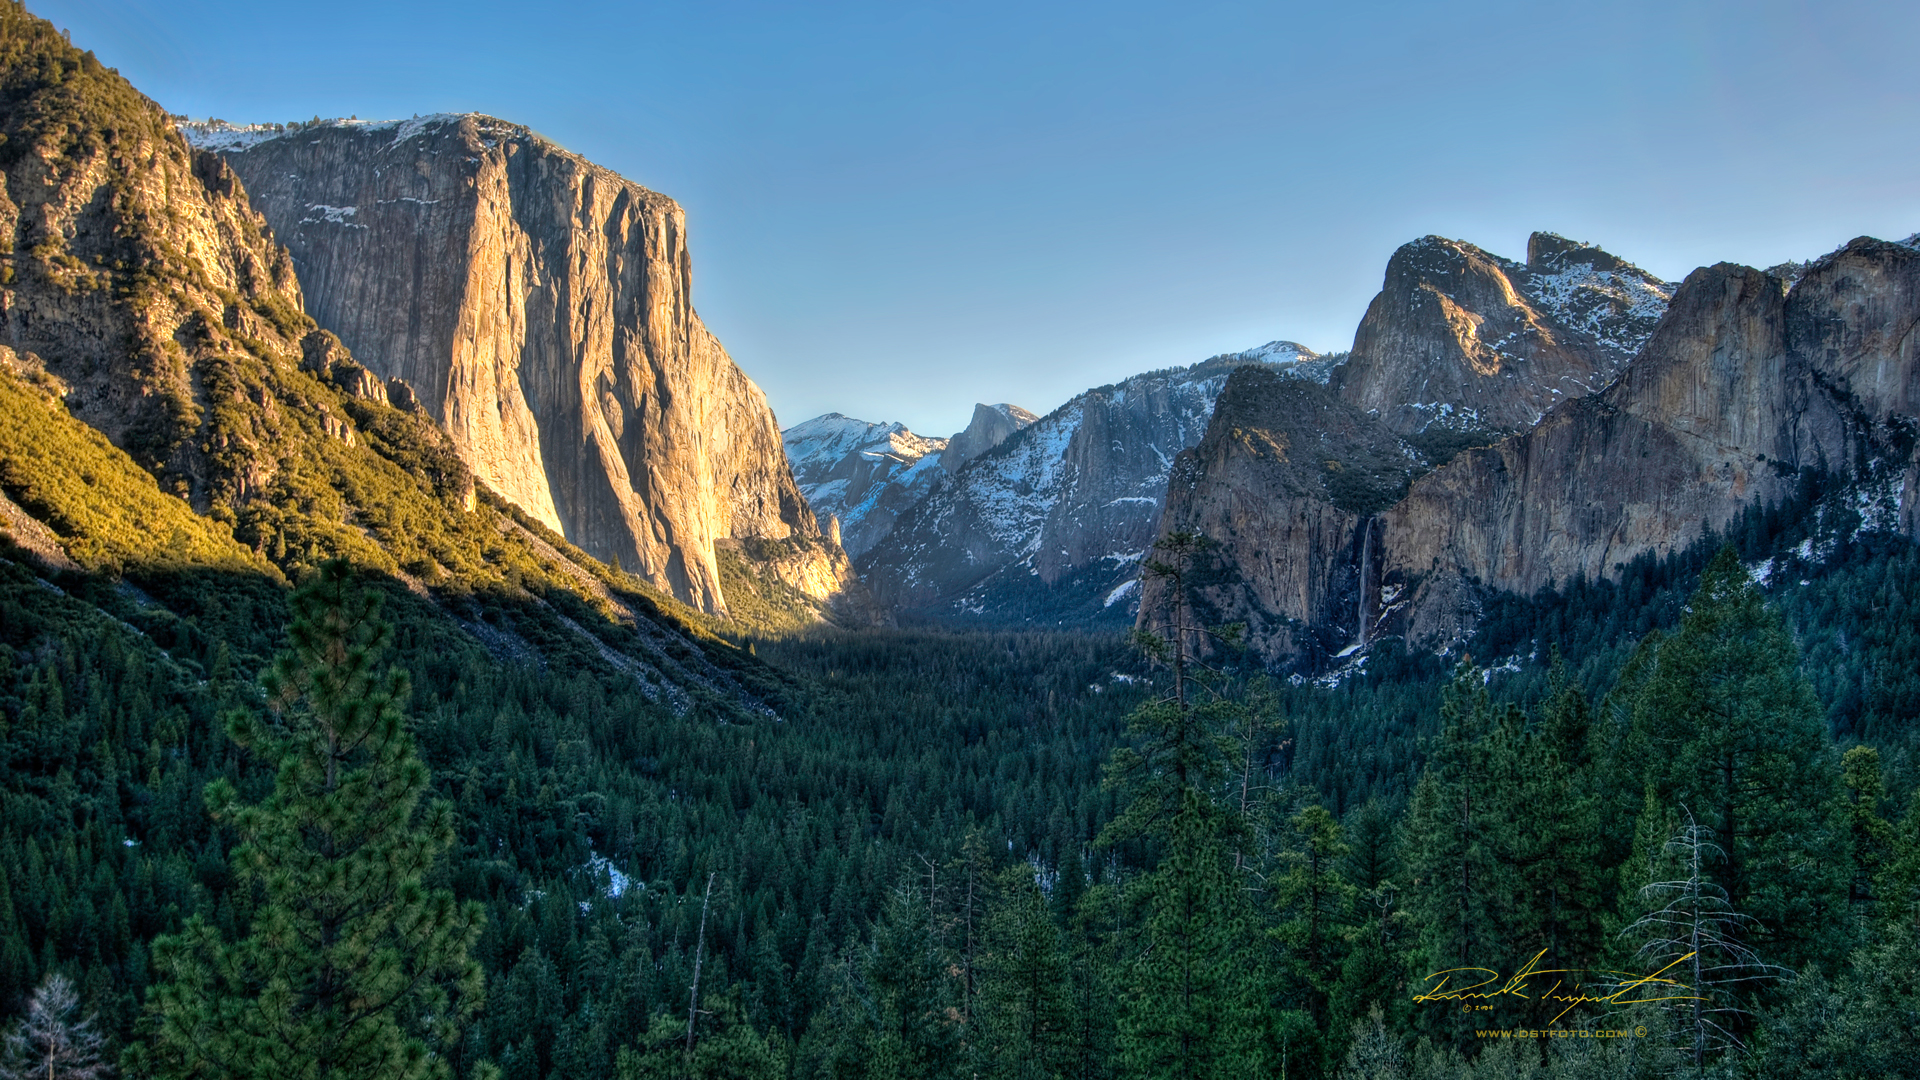 Hd wallpaper yosemite - 1920 1080 Us Wallpapers Page 10